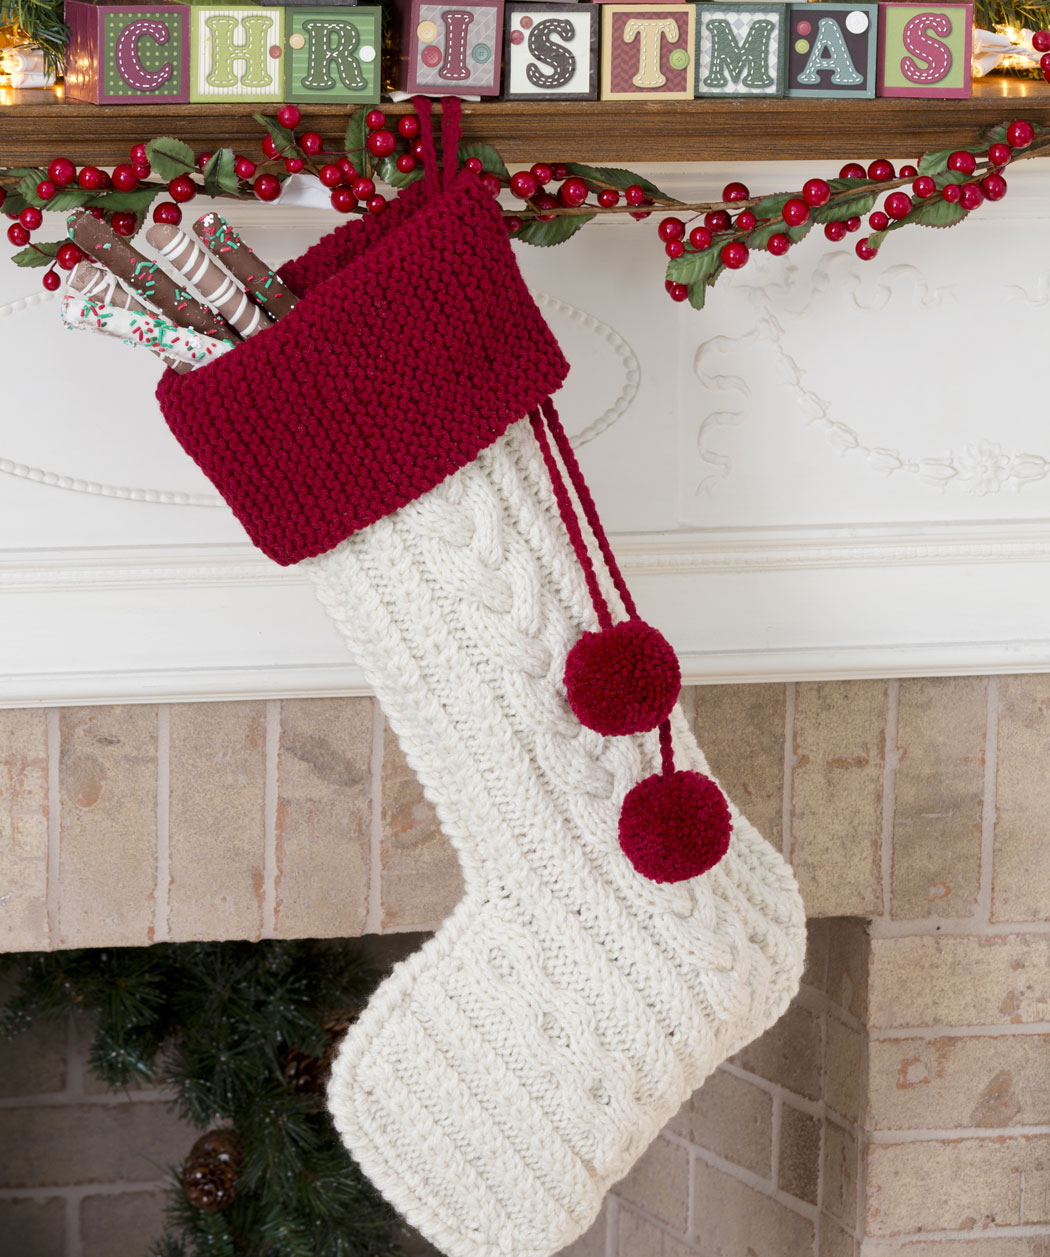 Knit Christmas Stocking Pattern With Name : The Knitting Needle and the Damage Done: A Run of Christmas Stockings